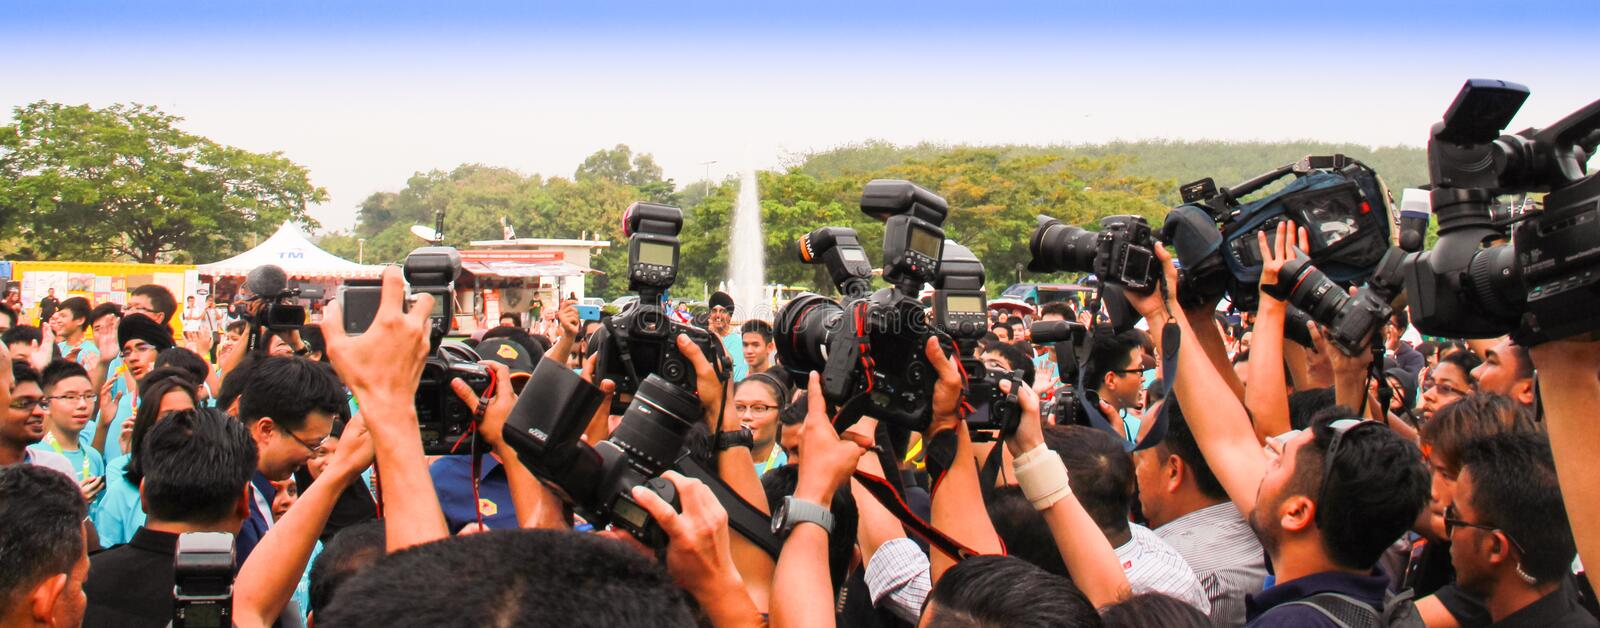 Group of cameramen and photographers royalty free stock image